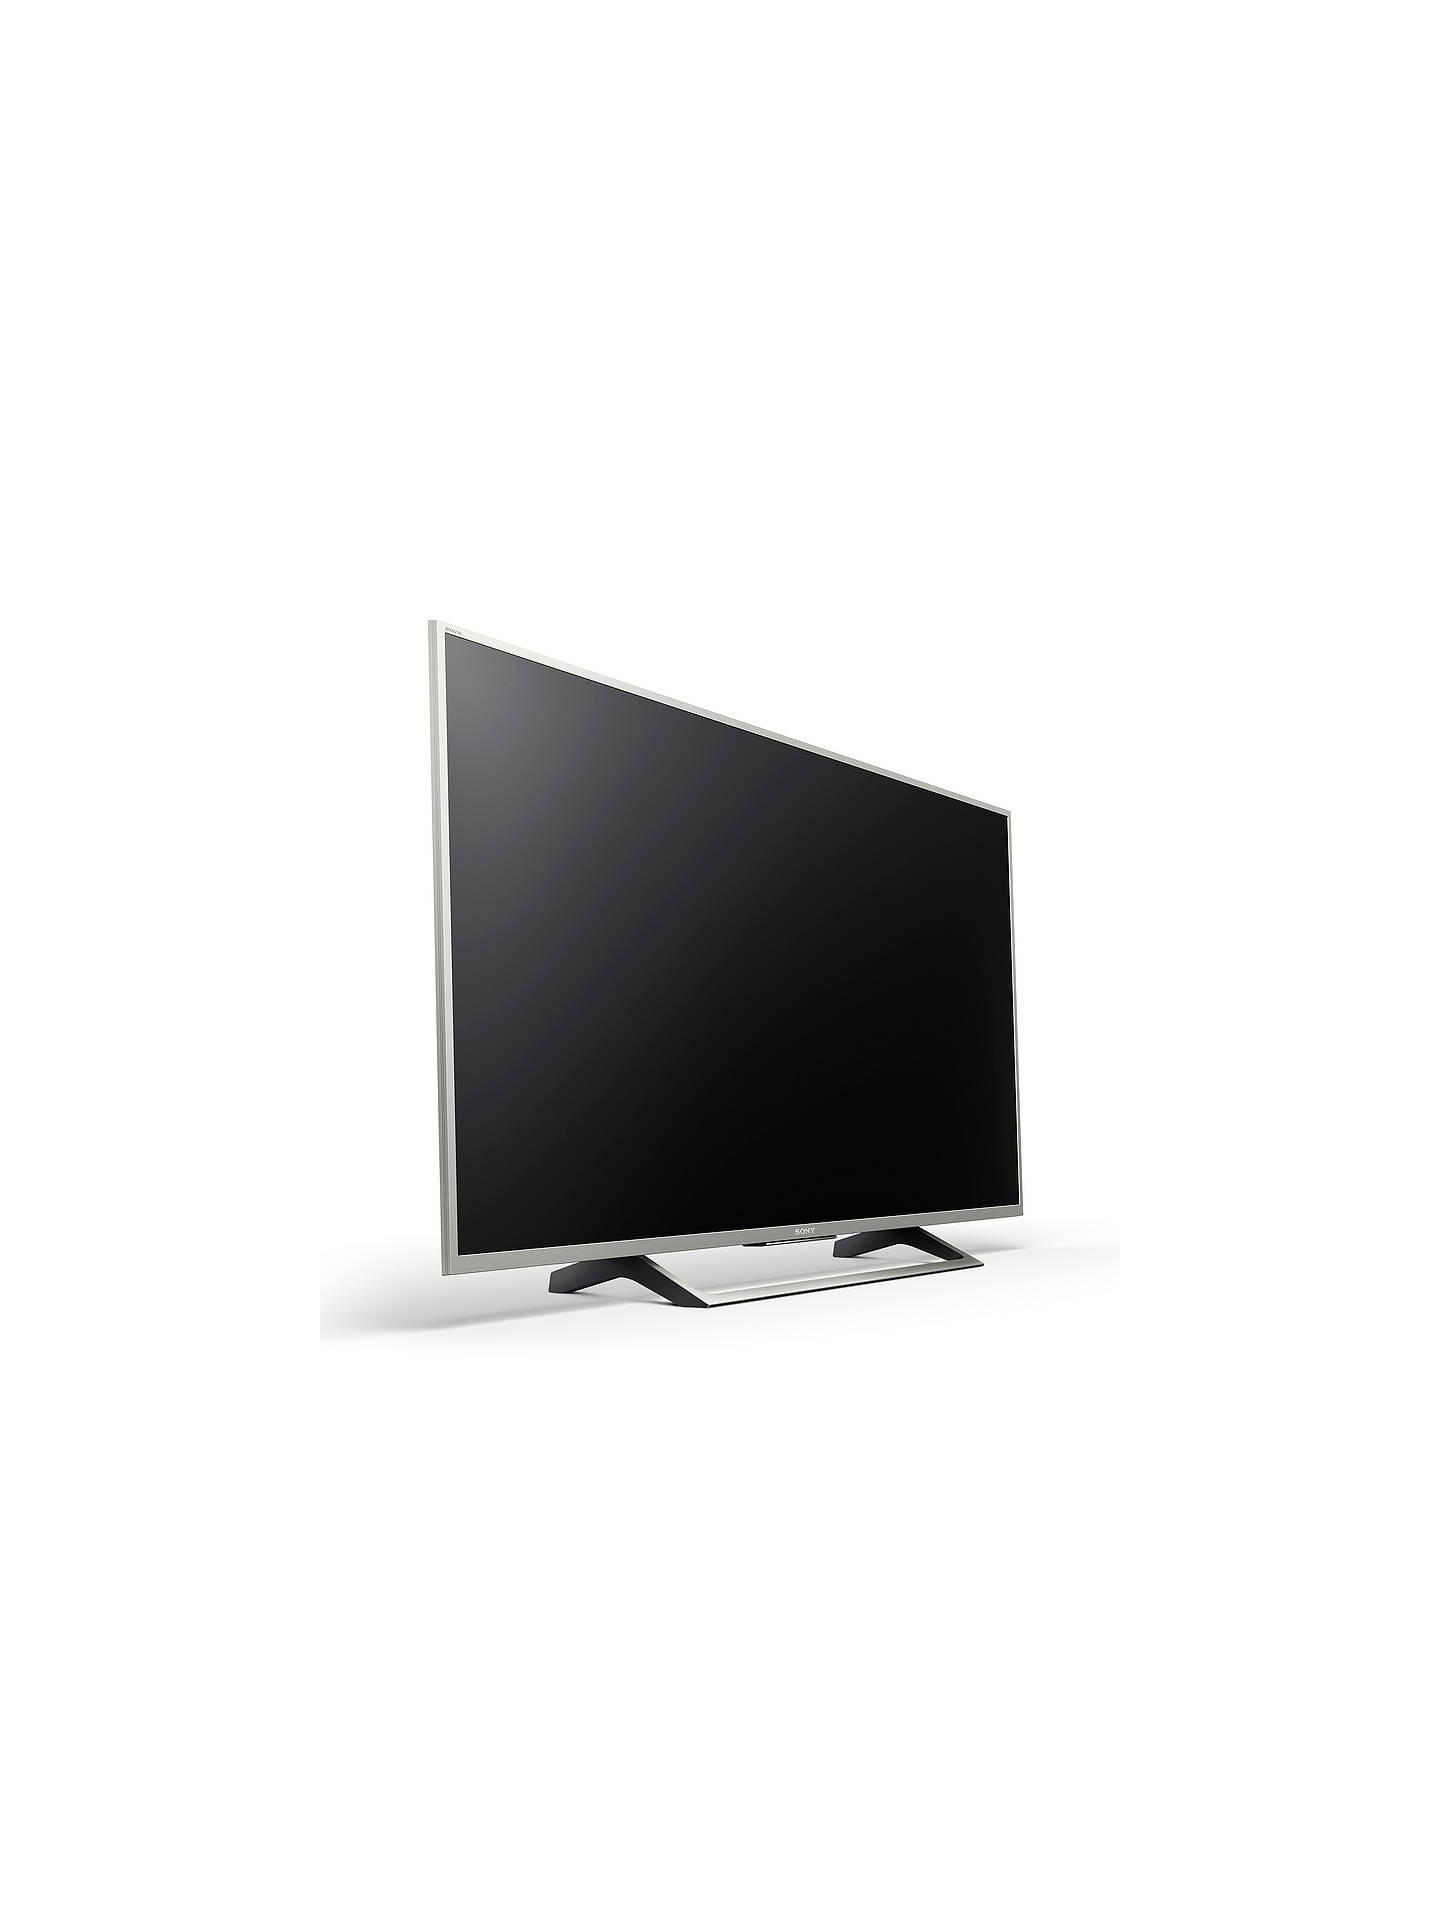 Sony Bravia Kd49xe7073 Led Hdr 4k Ultra Hd Smart Tv 49 With Home Theater Wiring Diagram Buysony Freeview Play